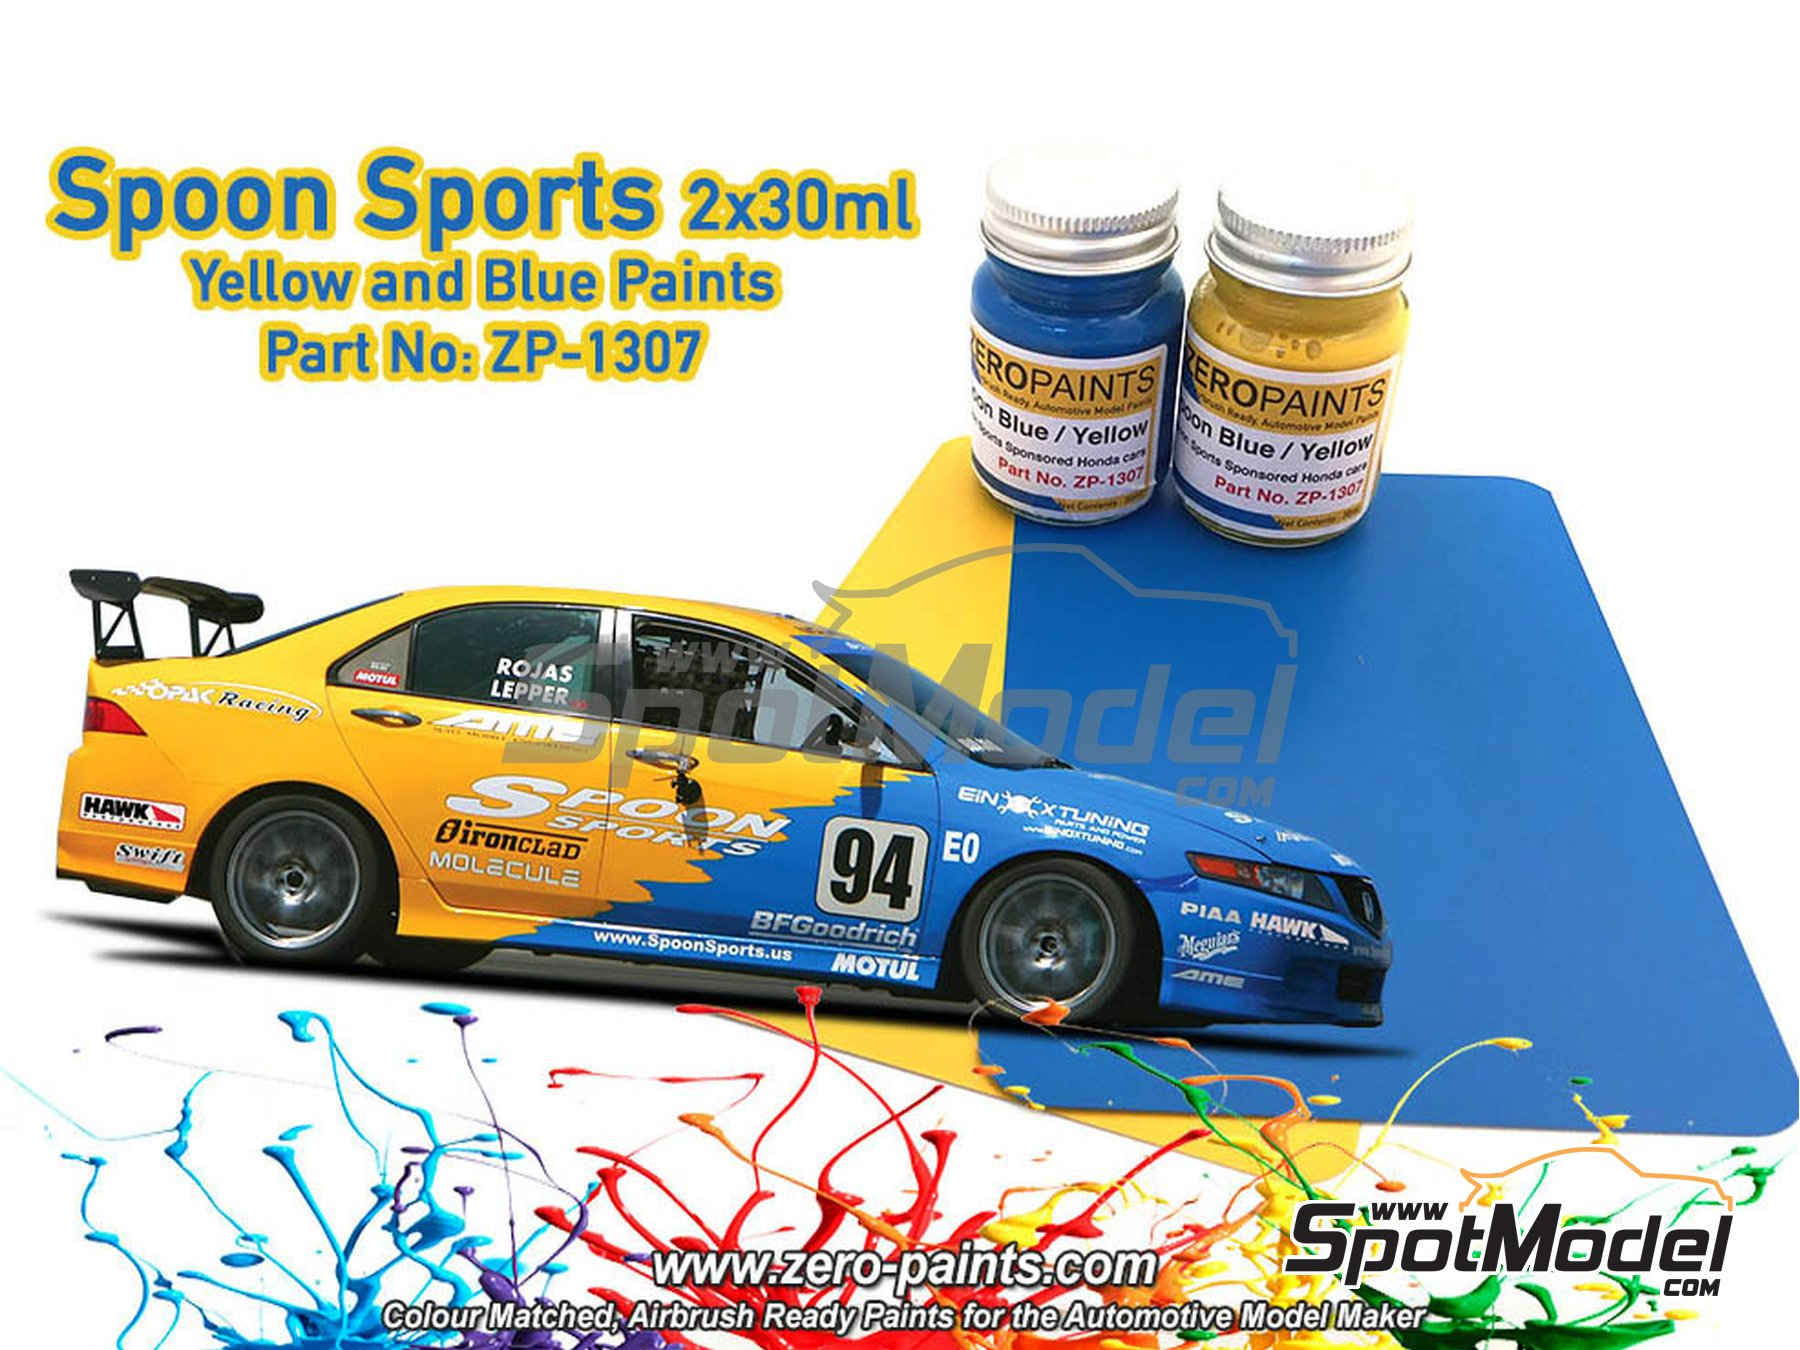 Image 1: Spoon Sports Blue and Yellow - 2x30ml | Paints set manufactured by Zero Paints (ref. ZP-1307)